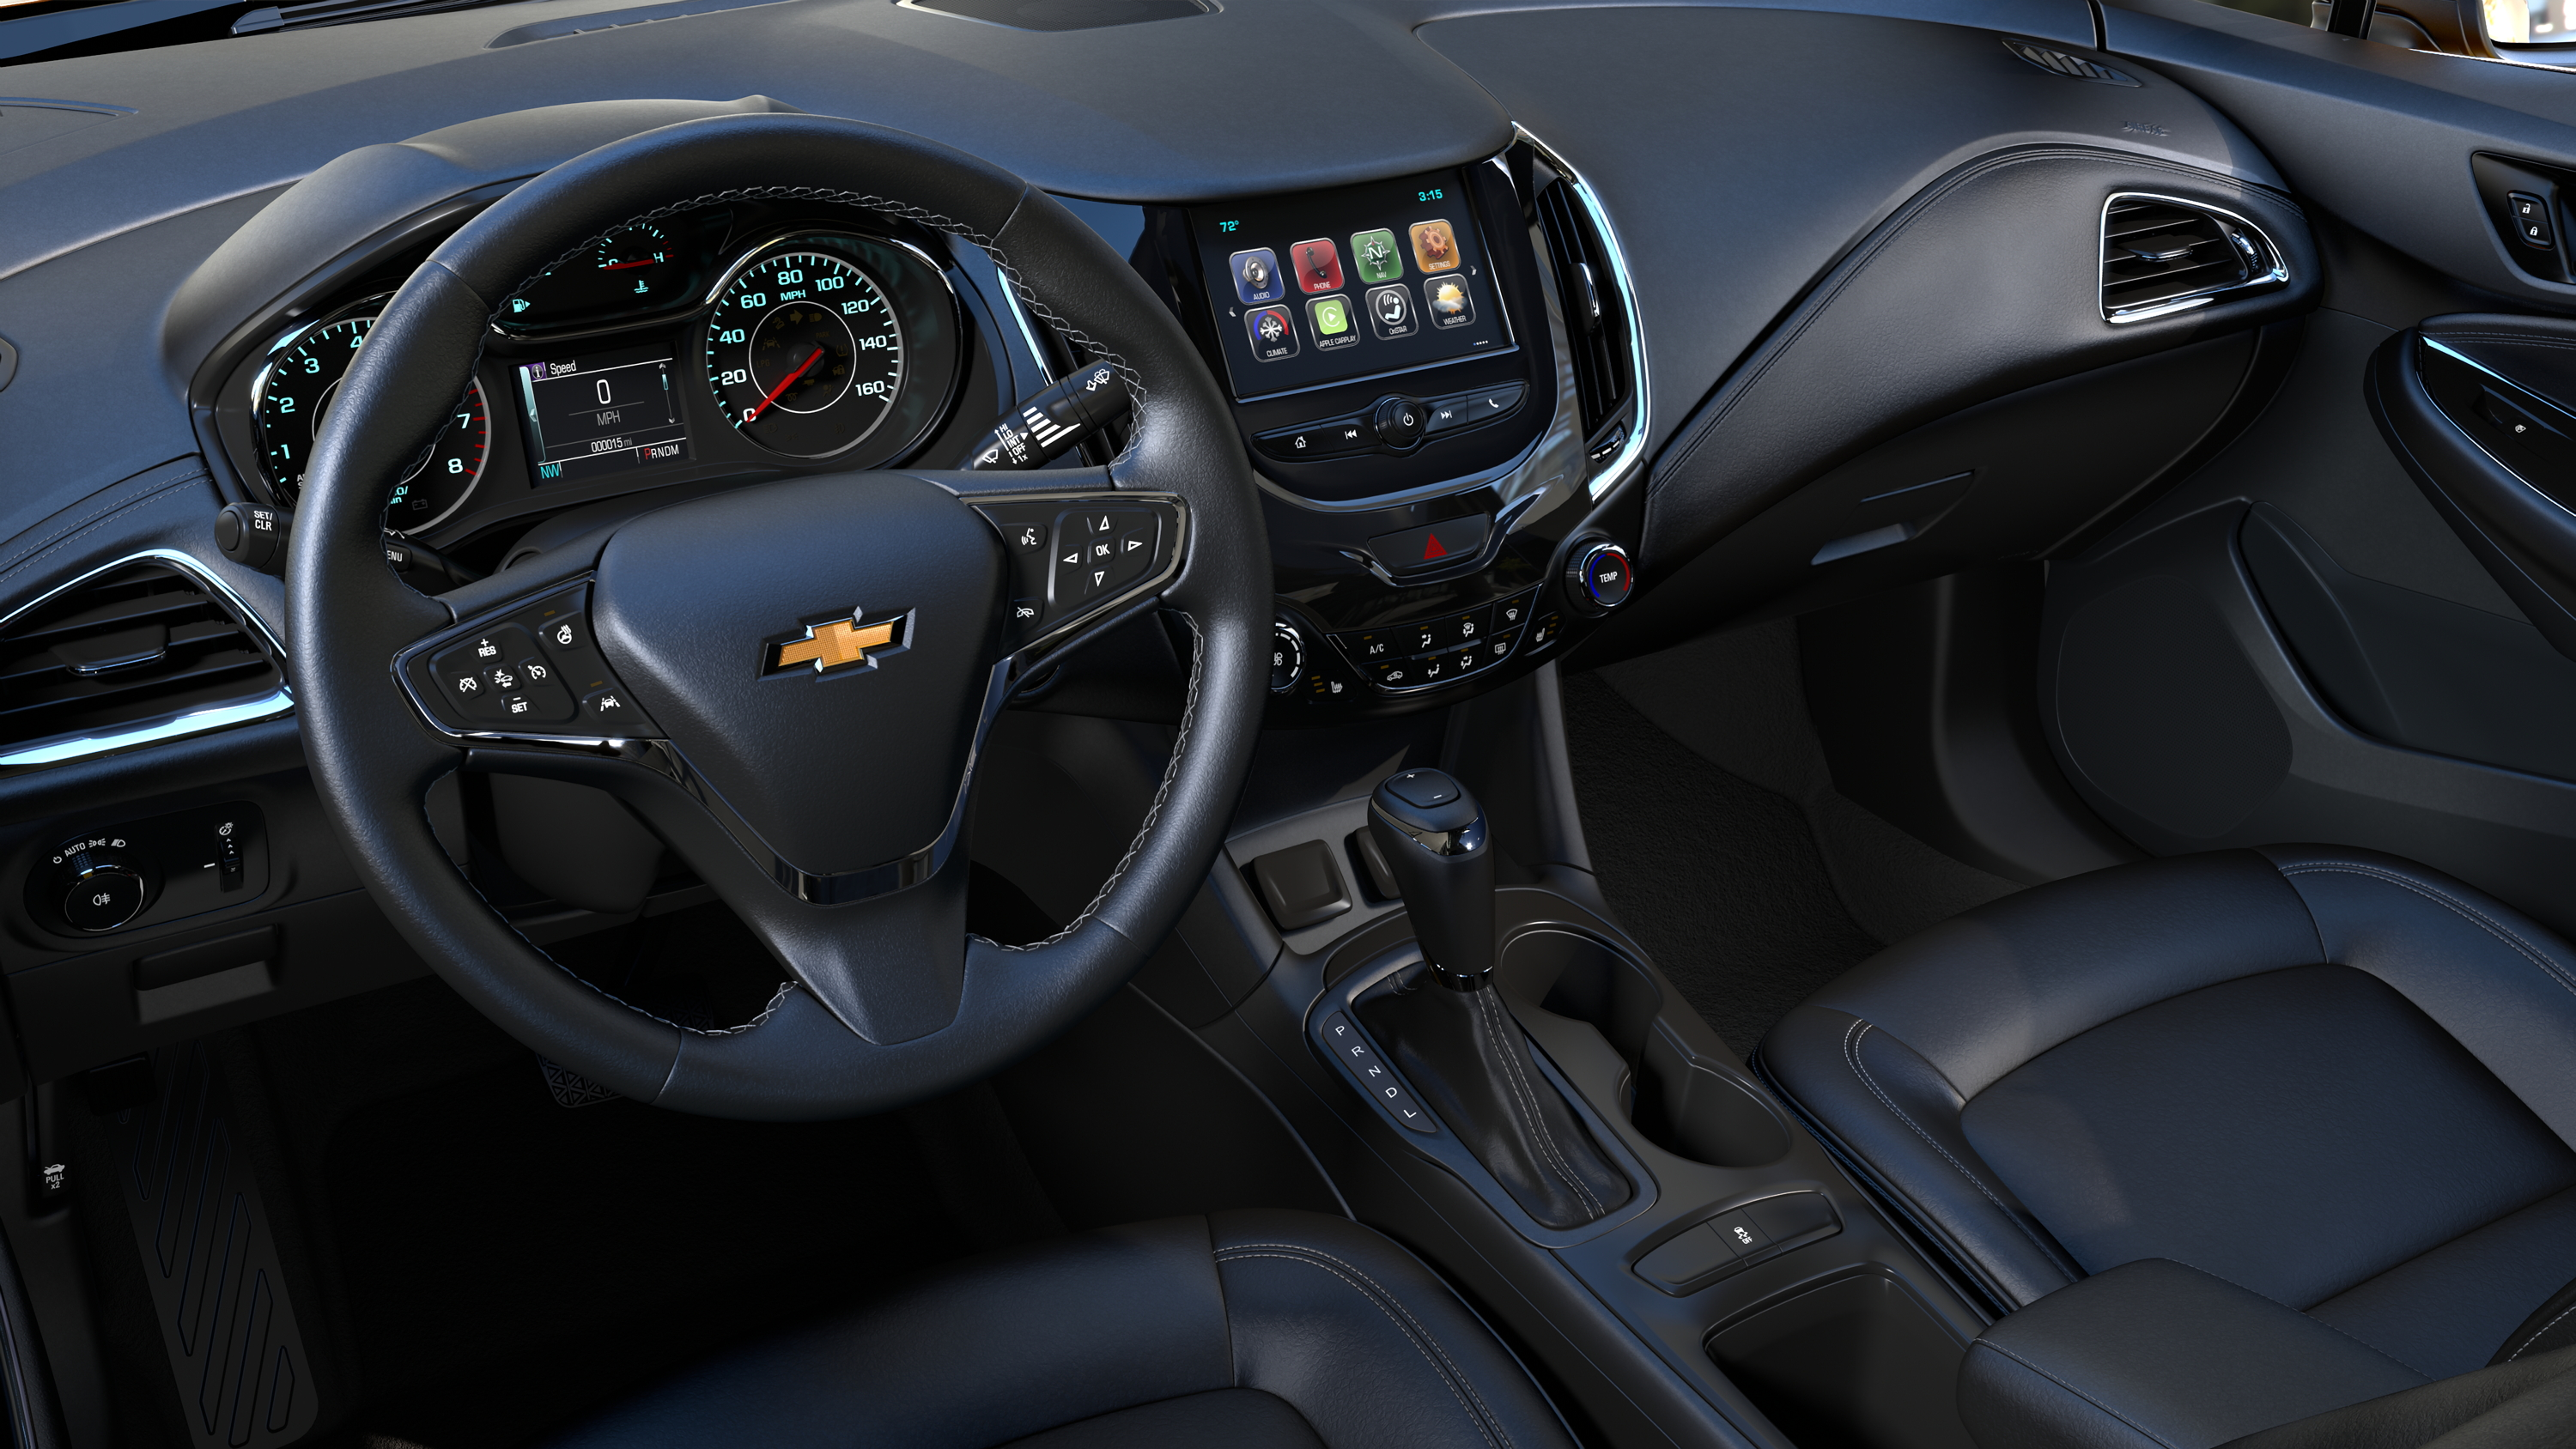 premium h hatchback cruze news chevrolet from priced goes with